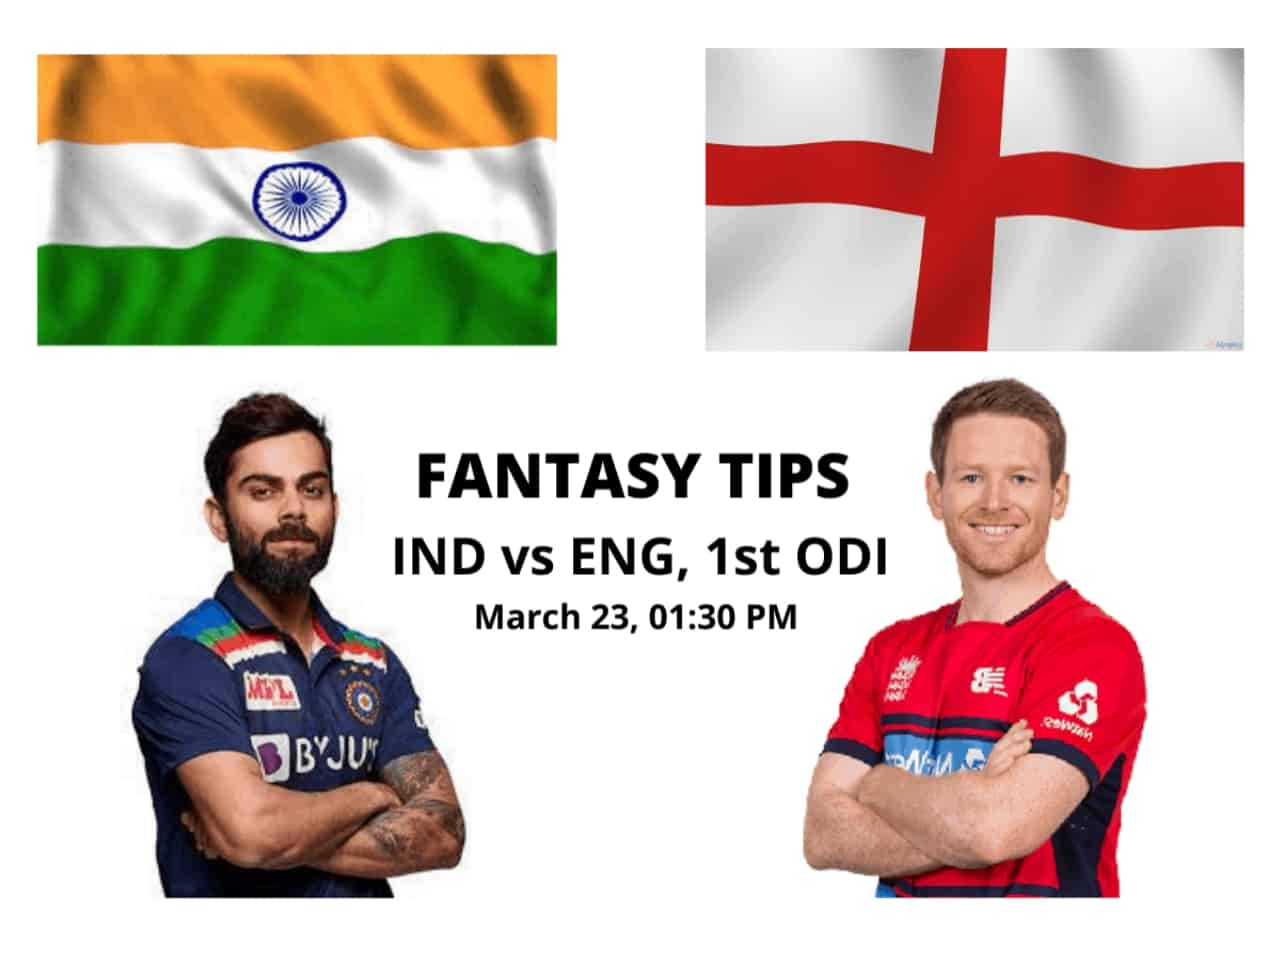 IND vs ENG 1st ODI Dream11 Match Prediction, Fantasy Cricket Tips, Head To Head Record, Playing XI and Pitch Report — India vs England ODI Series 2021